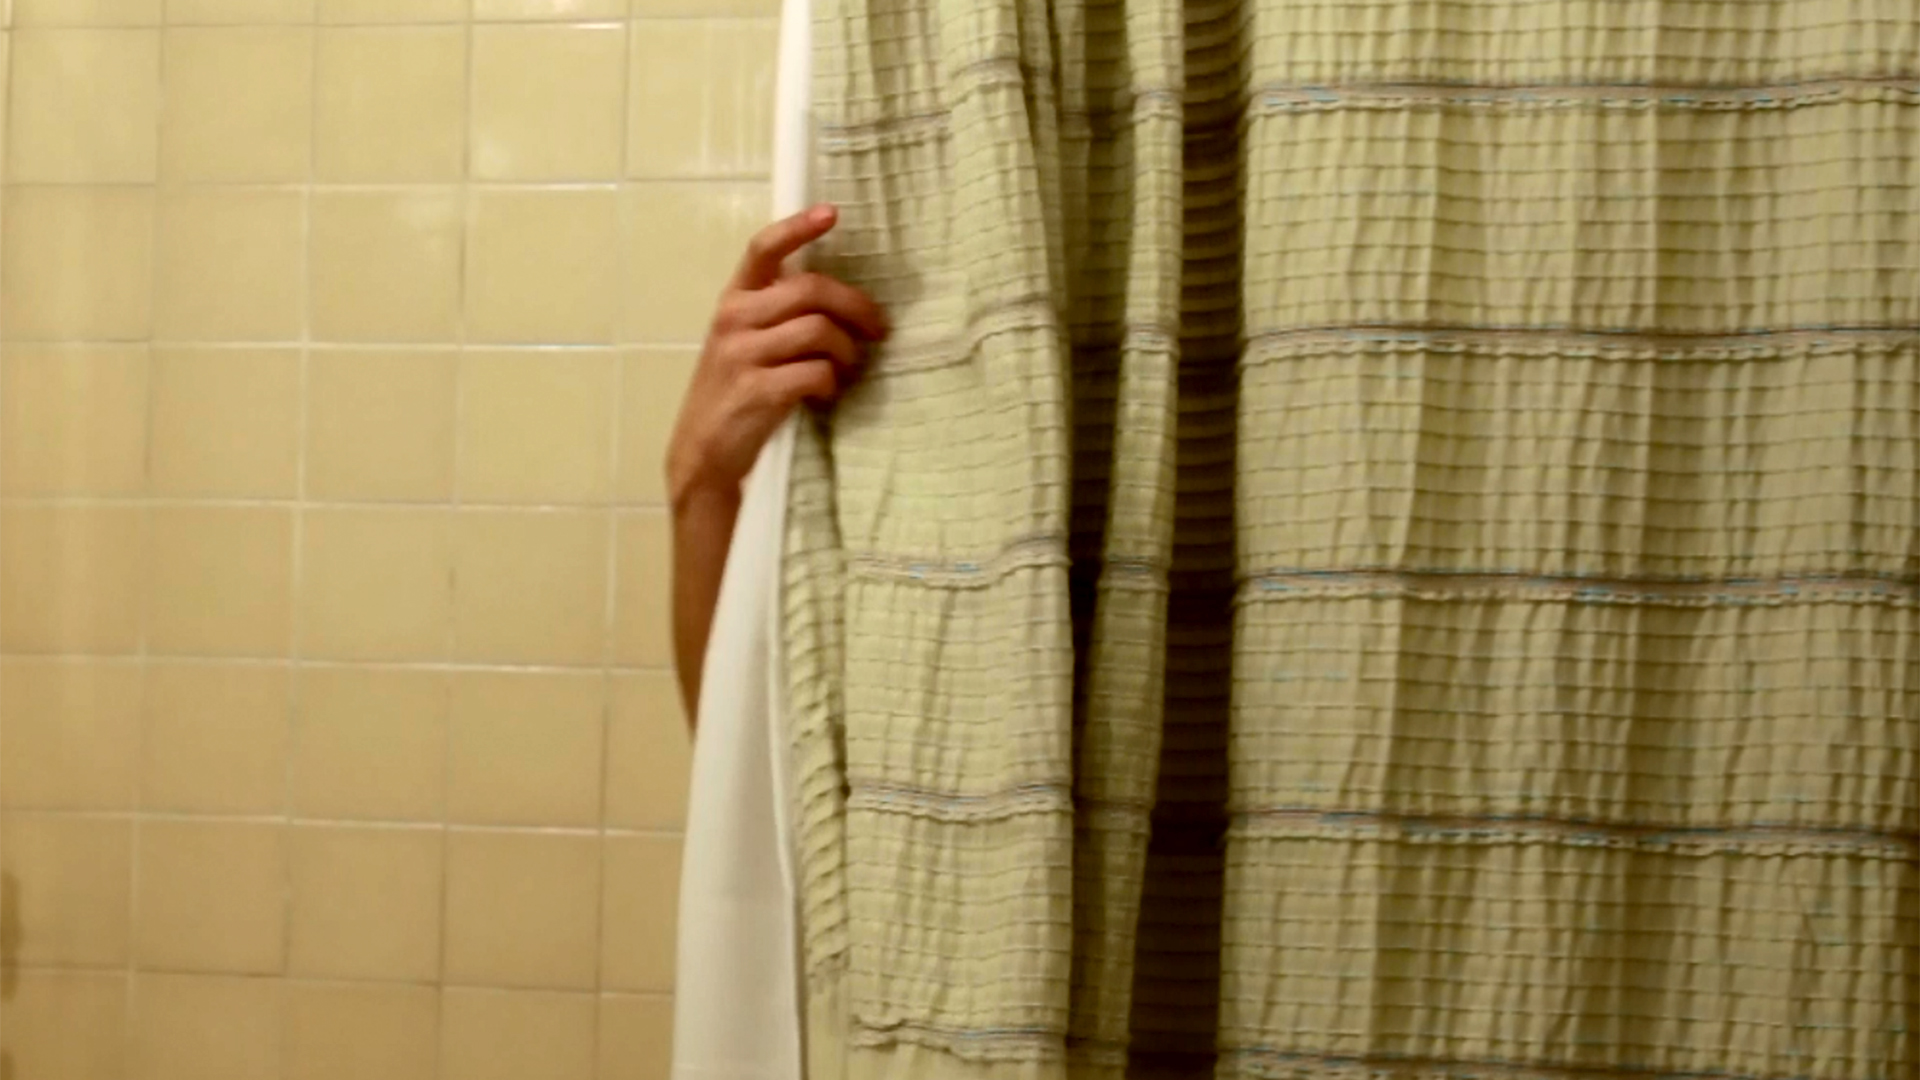 How often you should clean your shower curtain liner